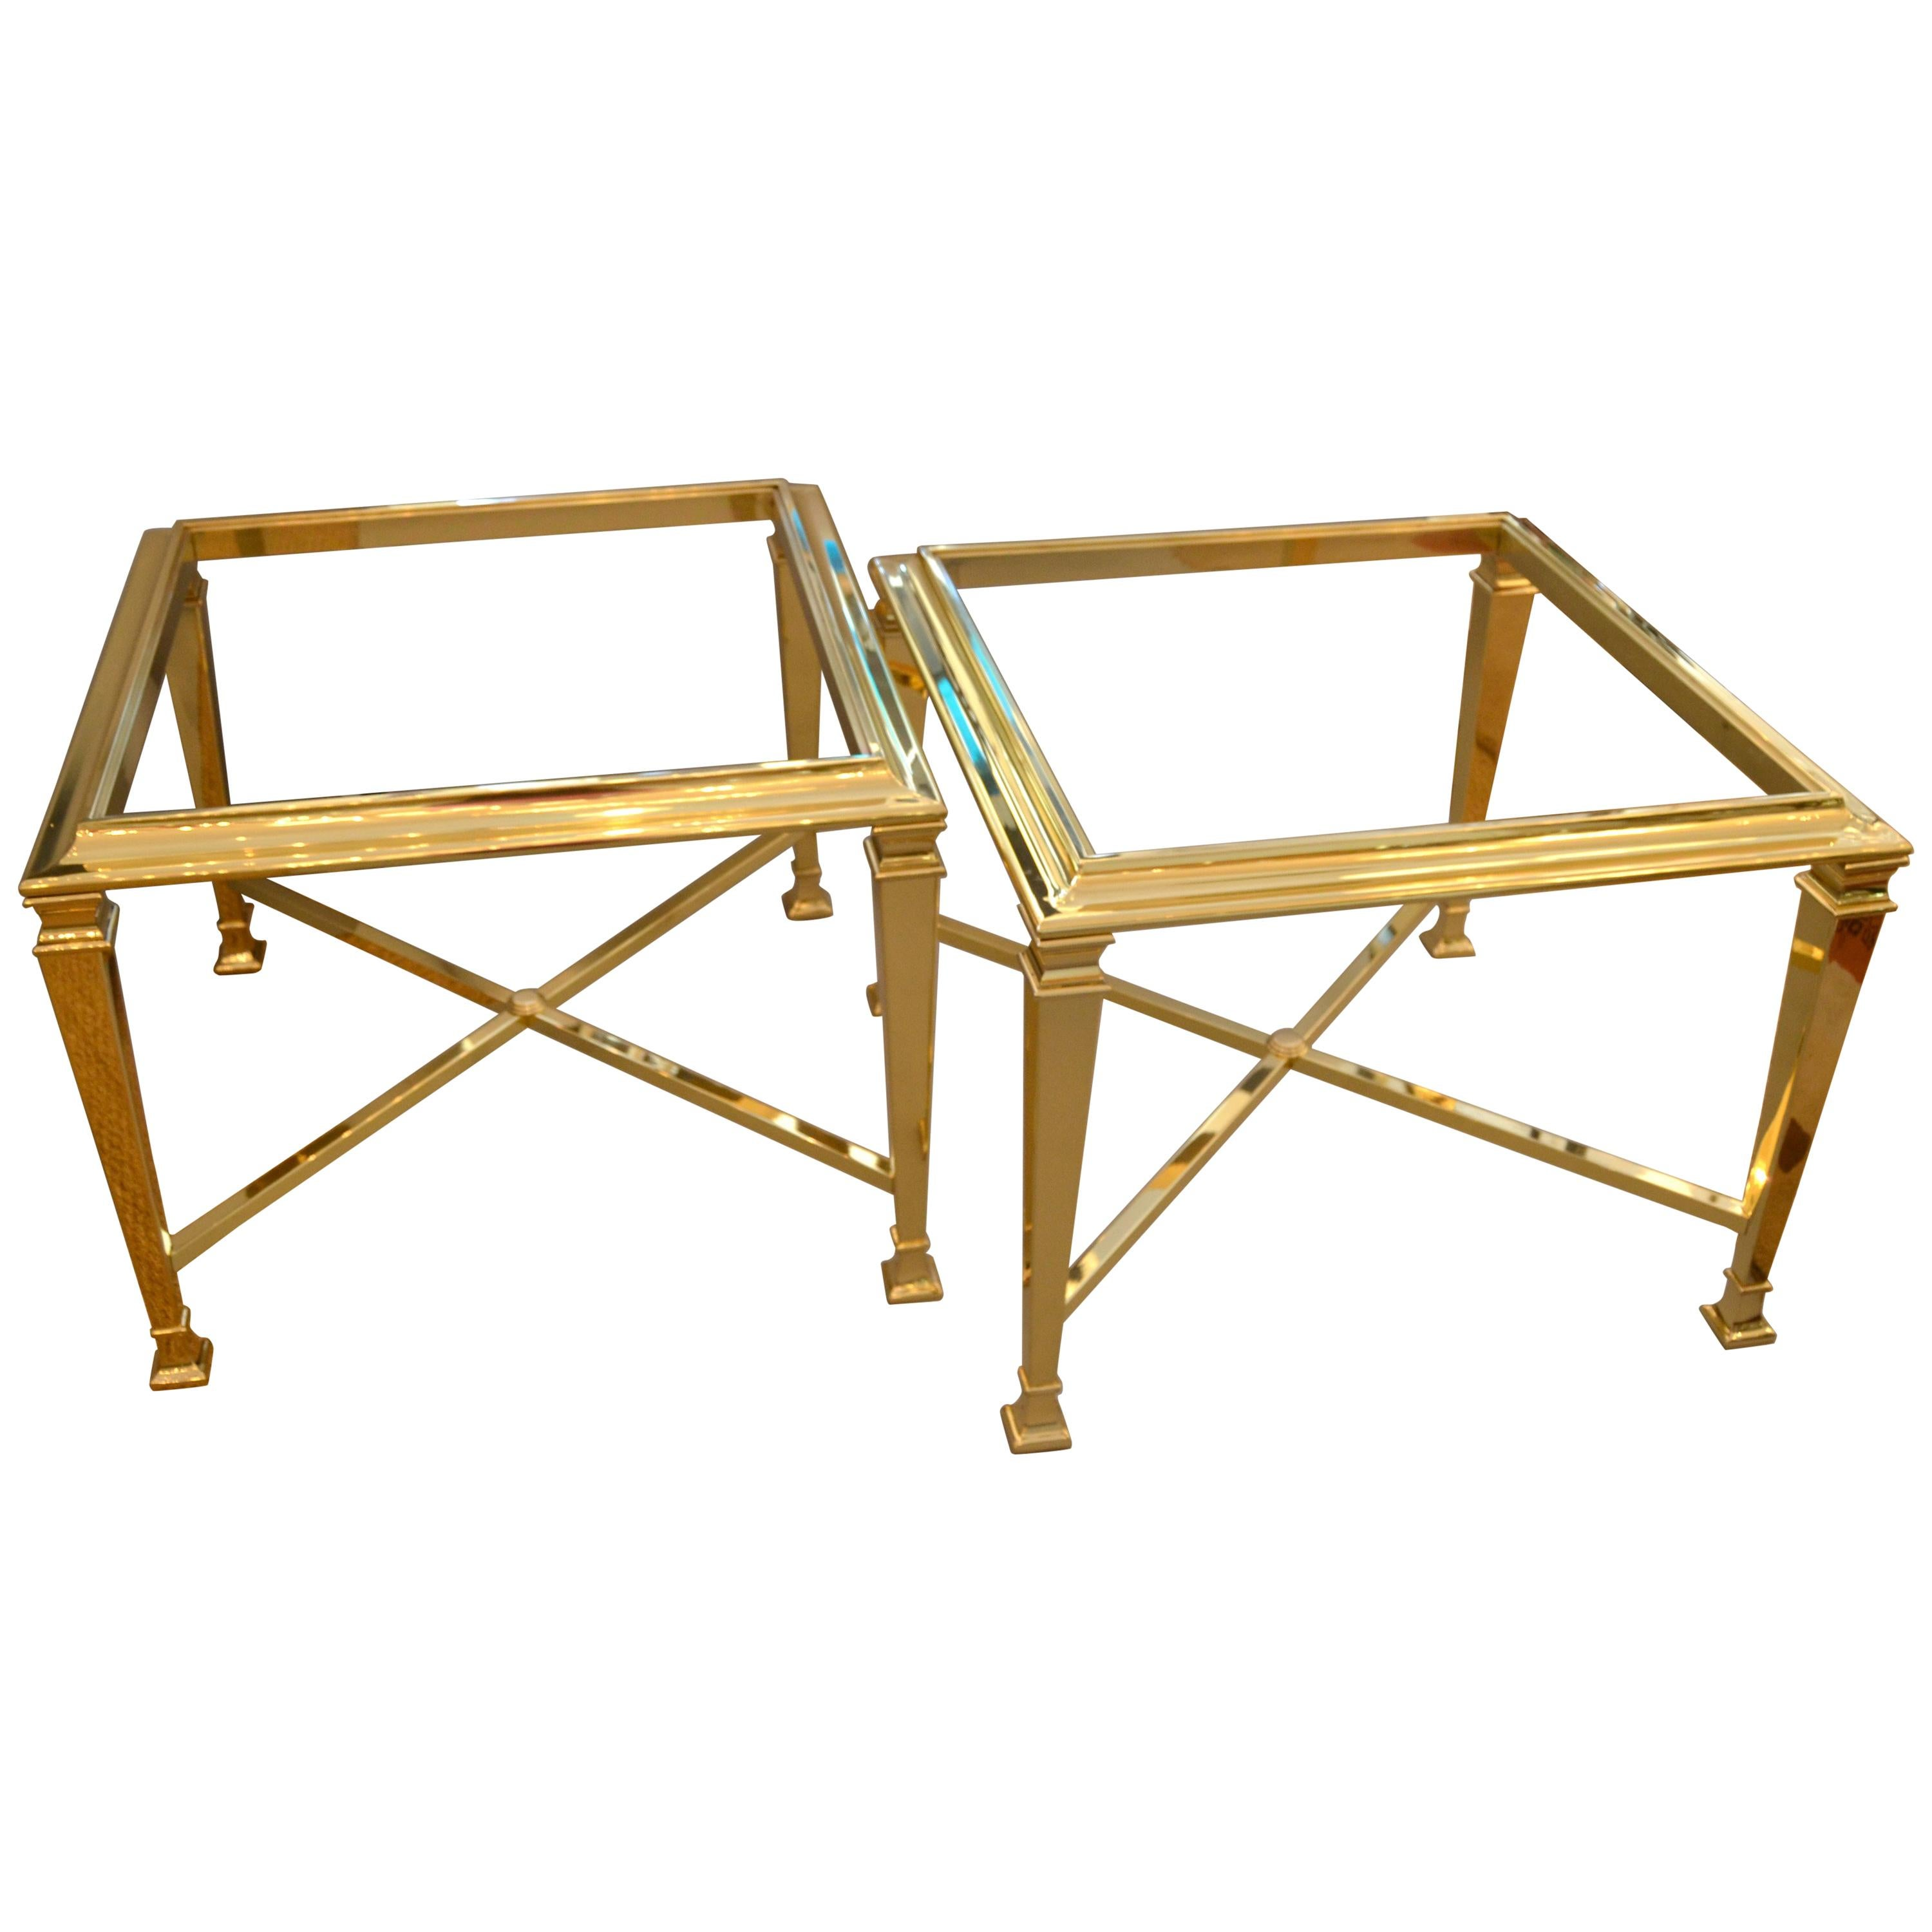 Hollywood Regency French Maison Jansen Brass Tables with Glass Tops, Pair